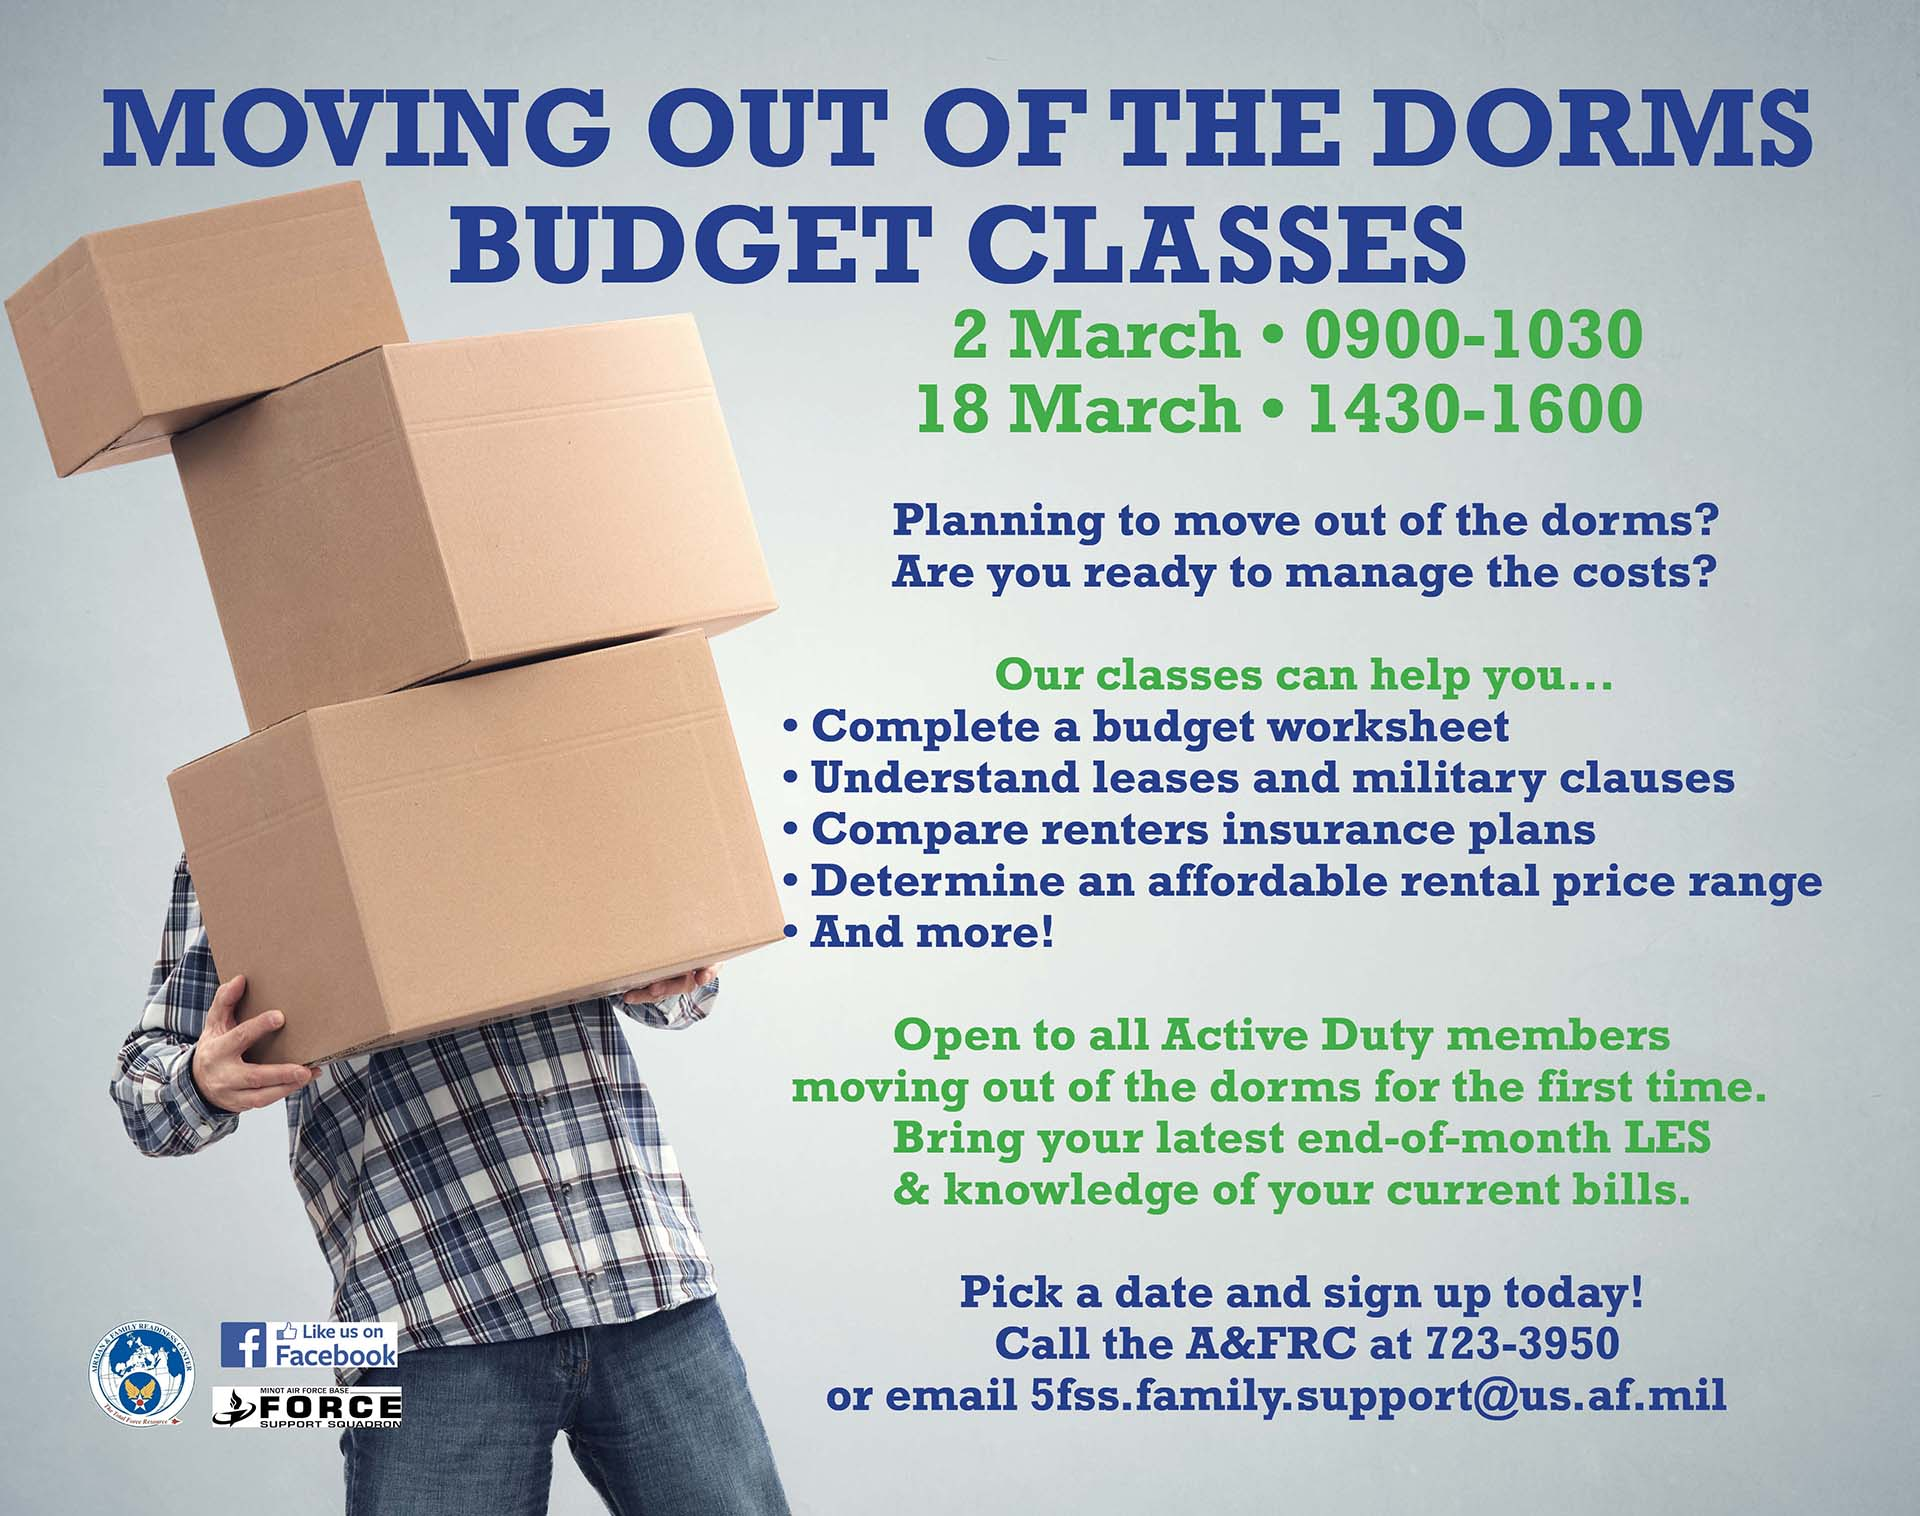 Moving Out of the Dorms Budget Class